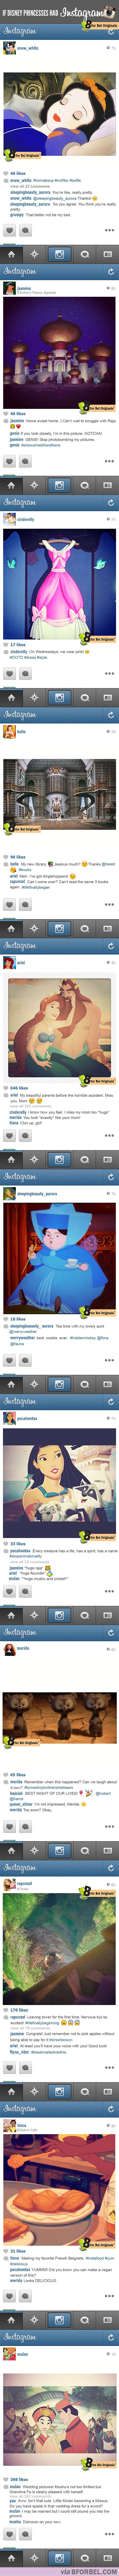 disney-princess-instagram-collage-small (1)